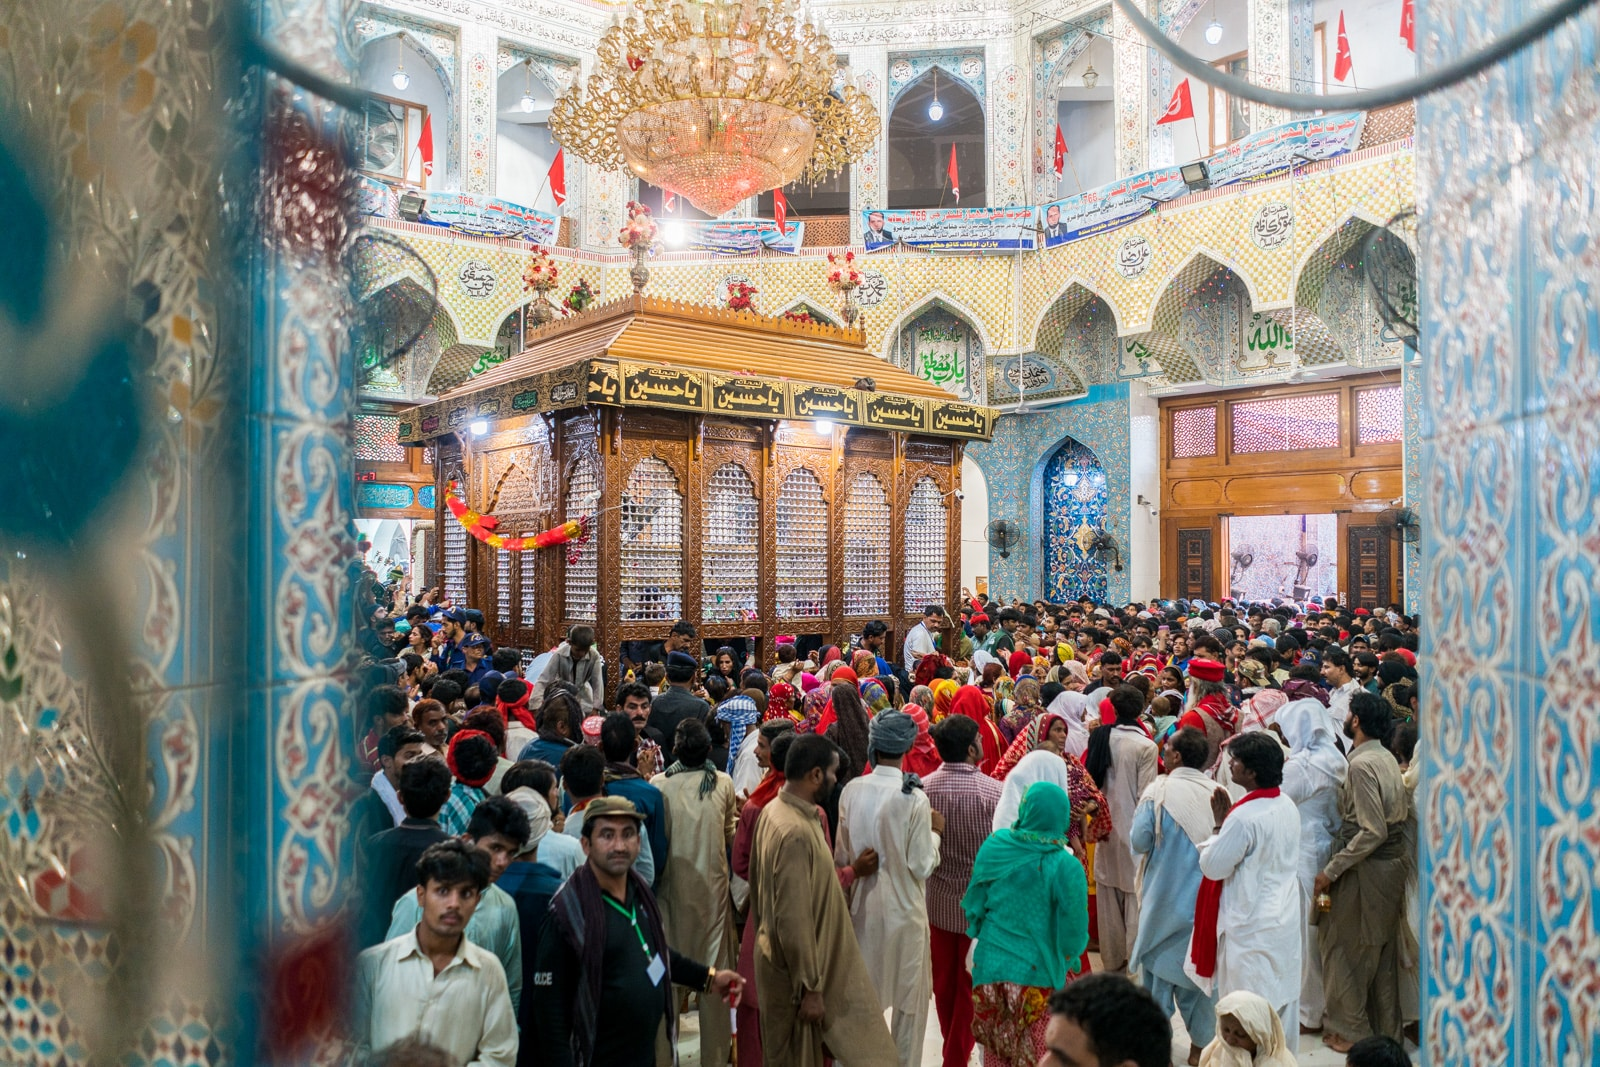 Sindh travel guide - Interior of the shrine of Lal Shahbaz Qalandar in Sehwan Sharif, Pakistan - Lost With Purpose travel blog